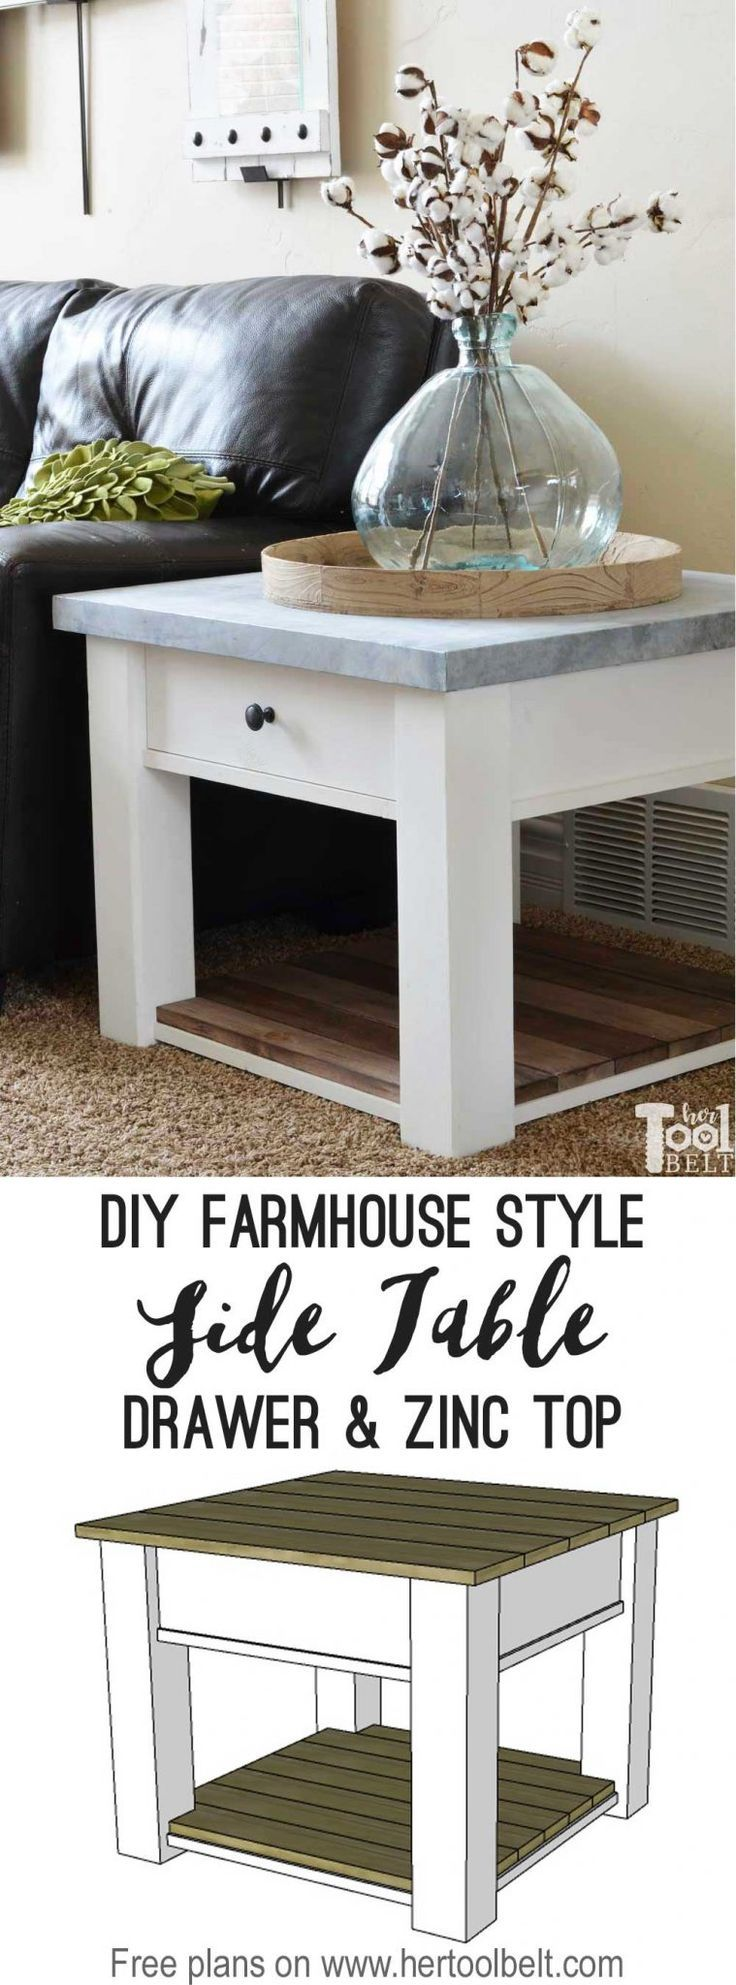 DIY Woodworking Ideas DIY farmhouse side table tutorial and free plans with optional drawer and zinc t...